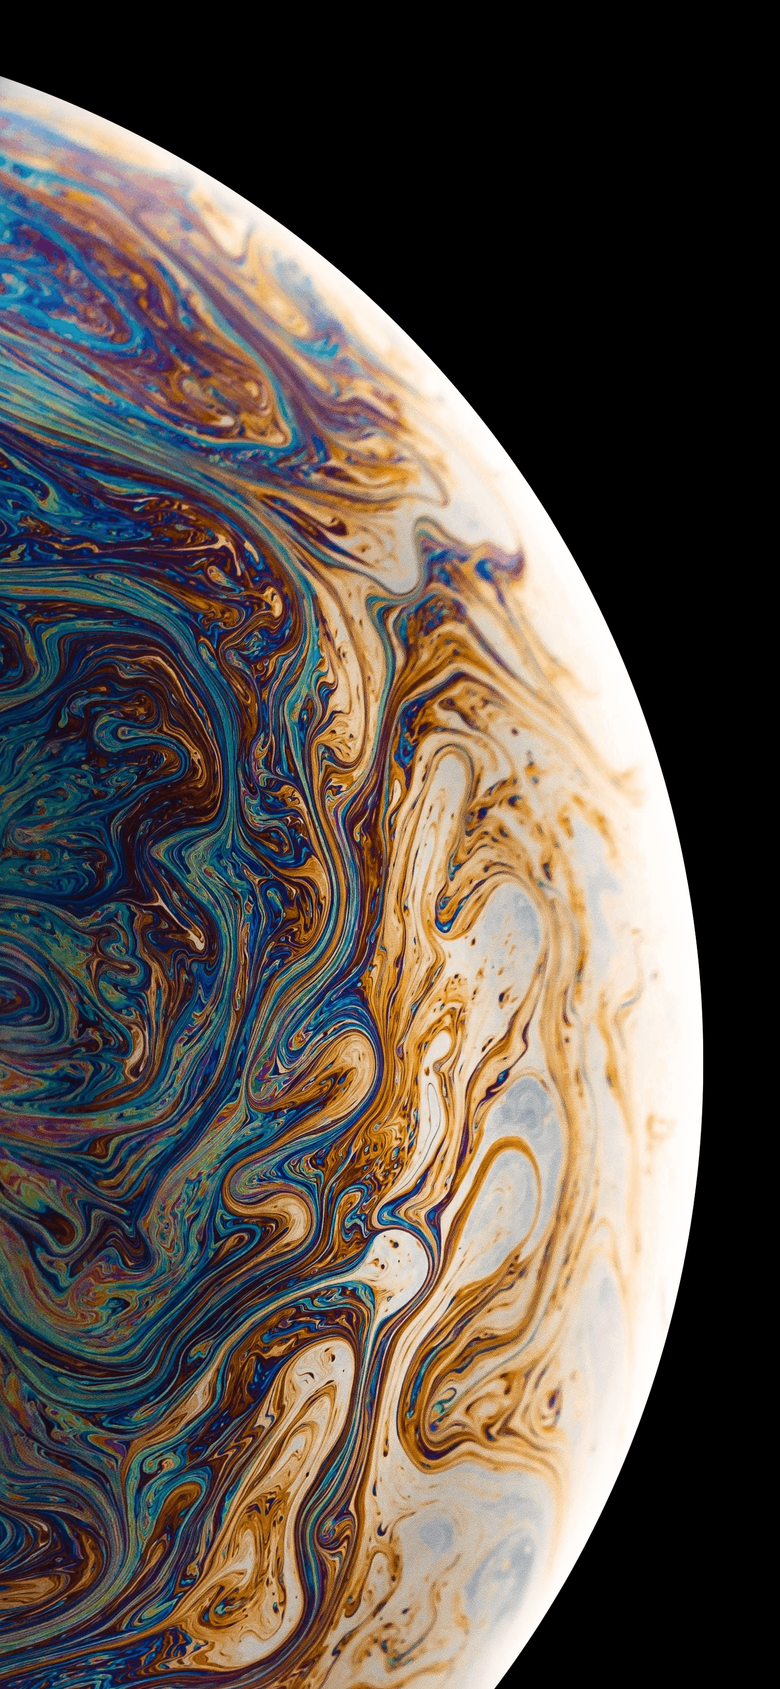 iPhone XI Concept Wallpapers